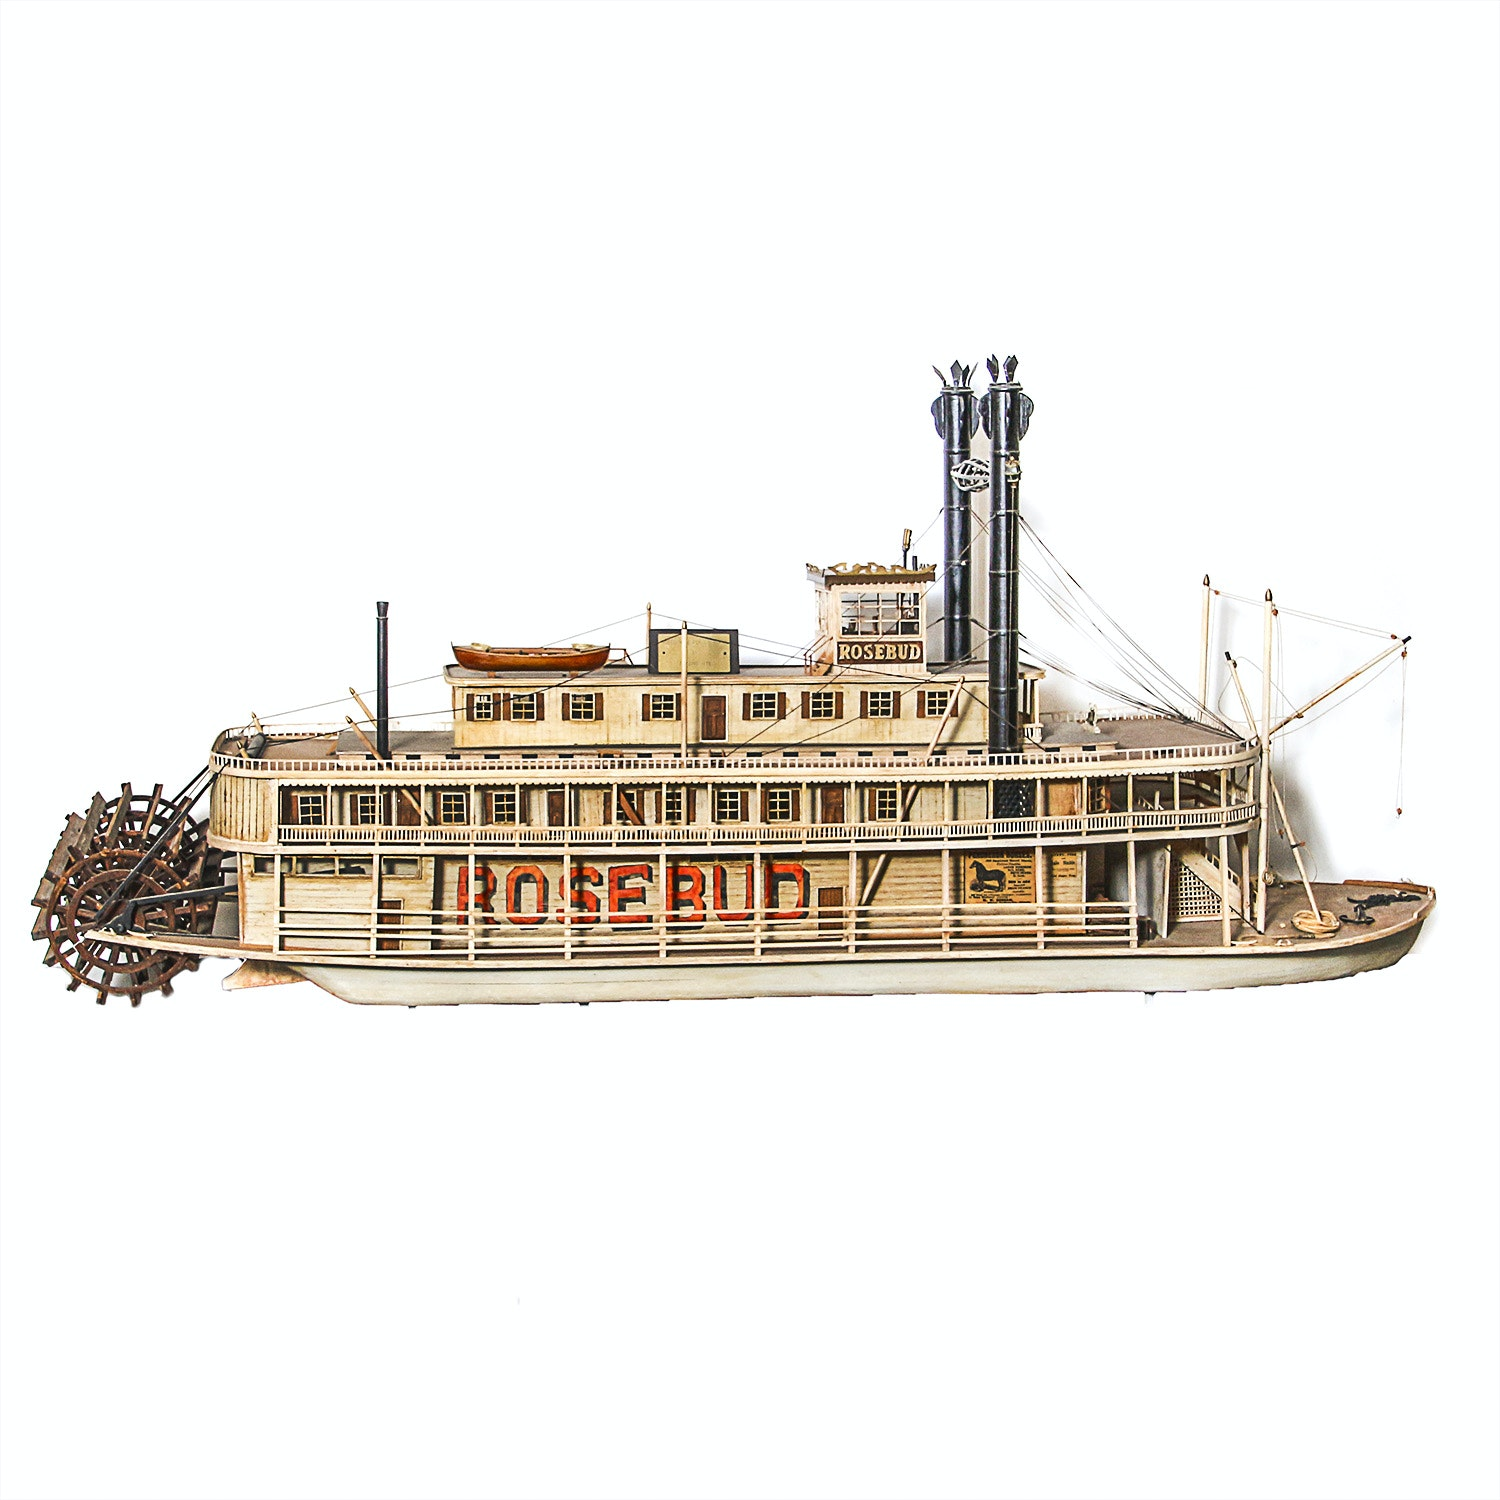 """Rosebud"" Model Riverboat by Edward C. Sims"